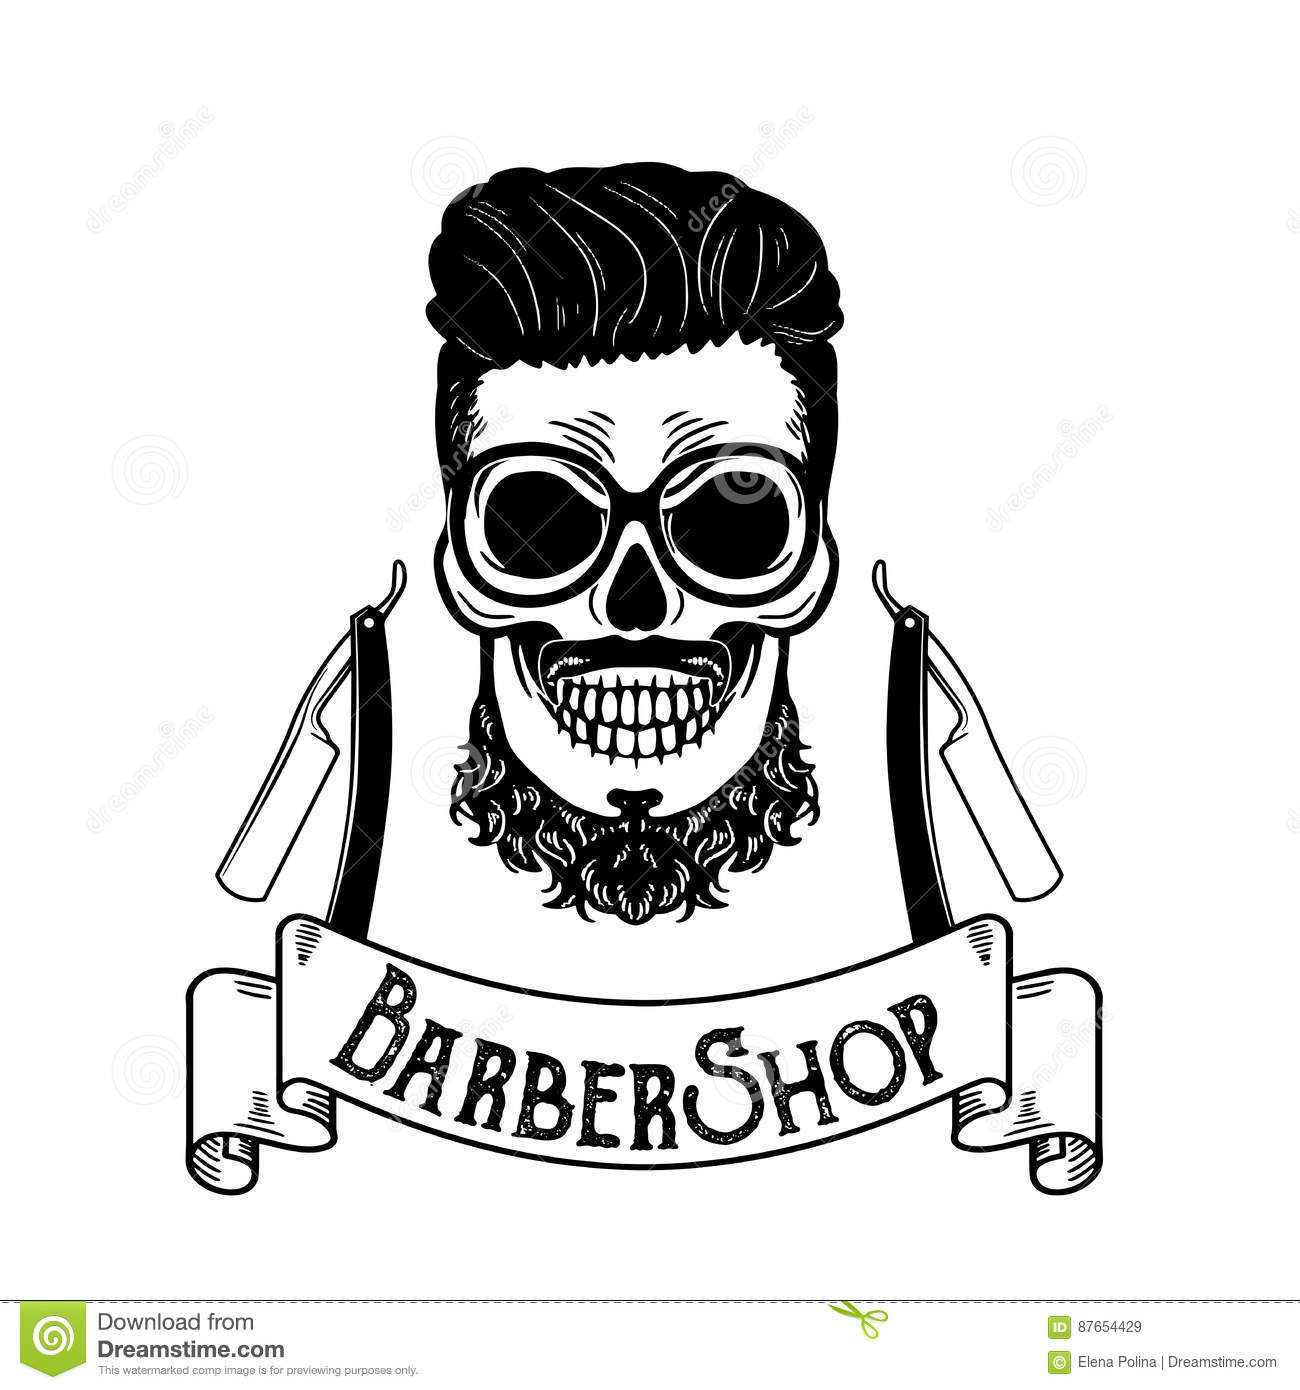 4 lessons you can learn from a barbershop business